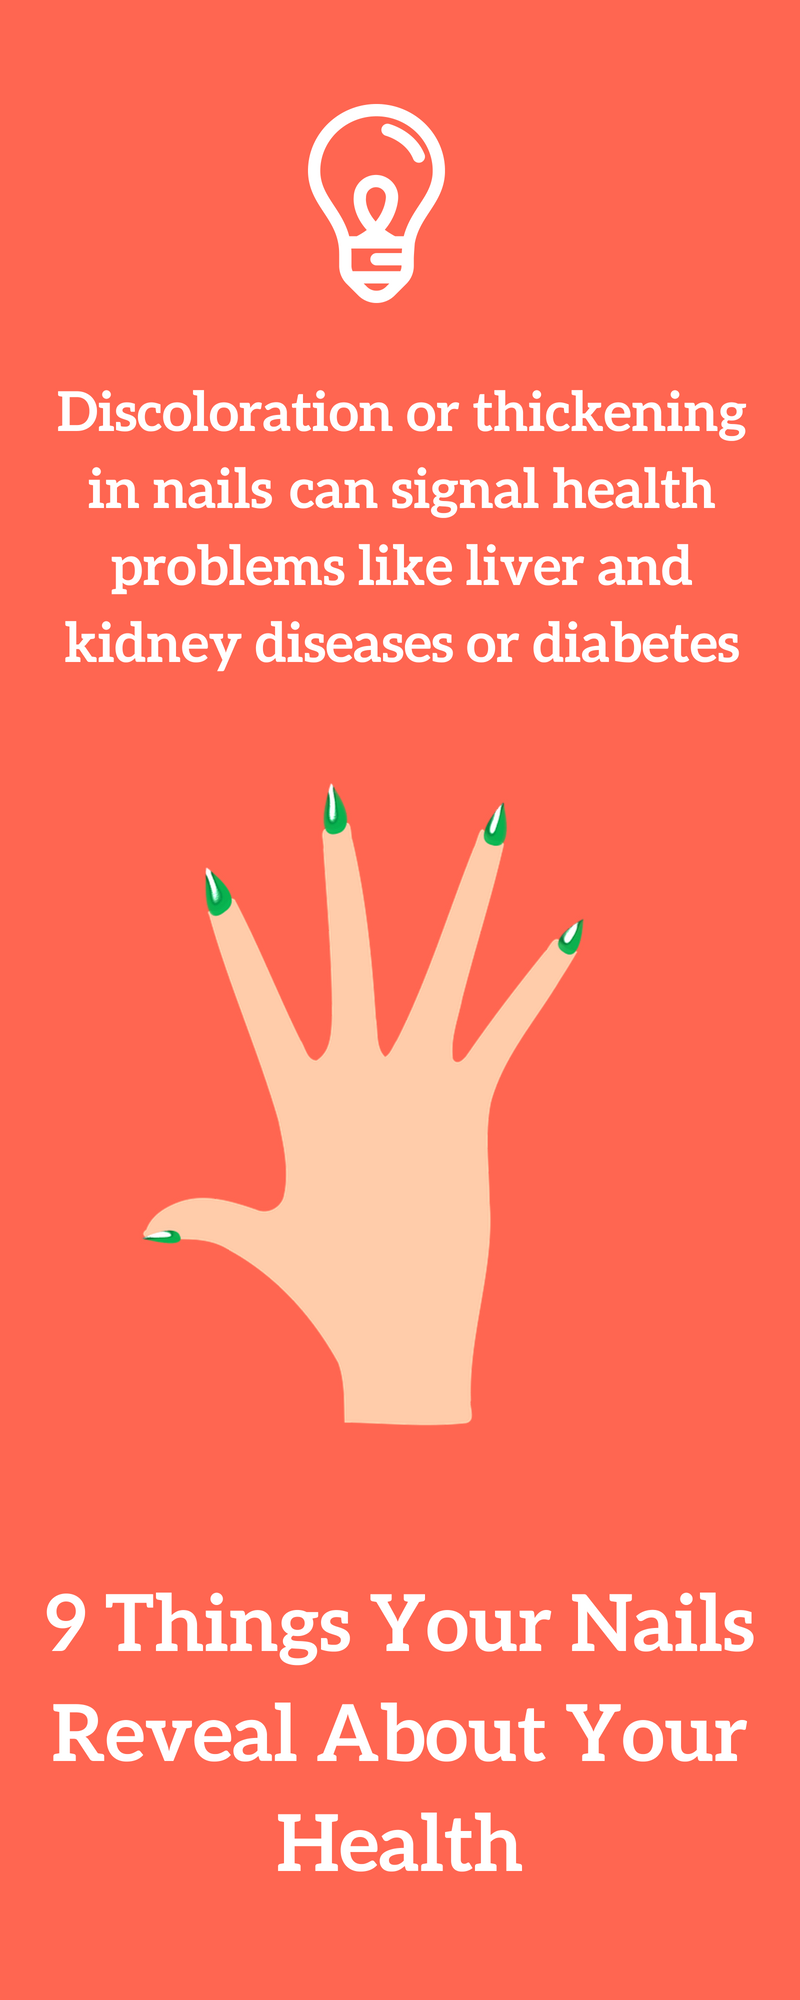 Discoloration Or Thickening In Nails Can Signal Health Problems Likfe Liver And Kidney Diseases Or Diabetes In 2020 Lung Conditions Kidney Disease Nail Health